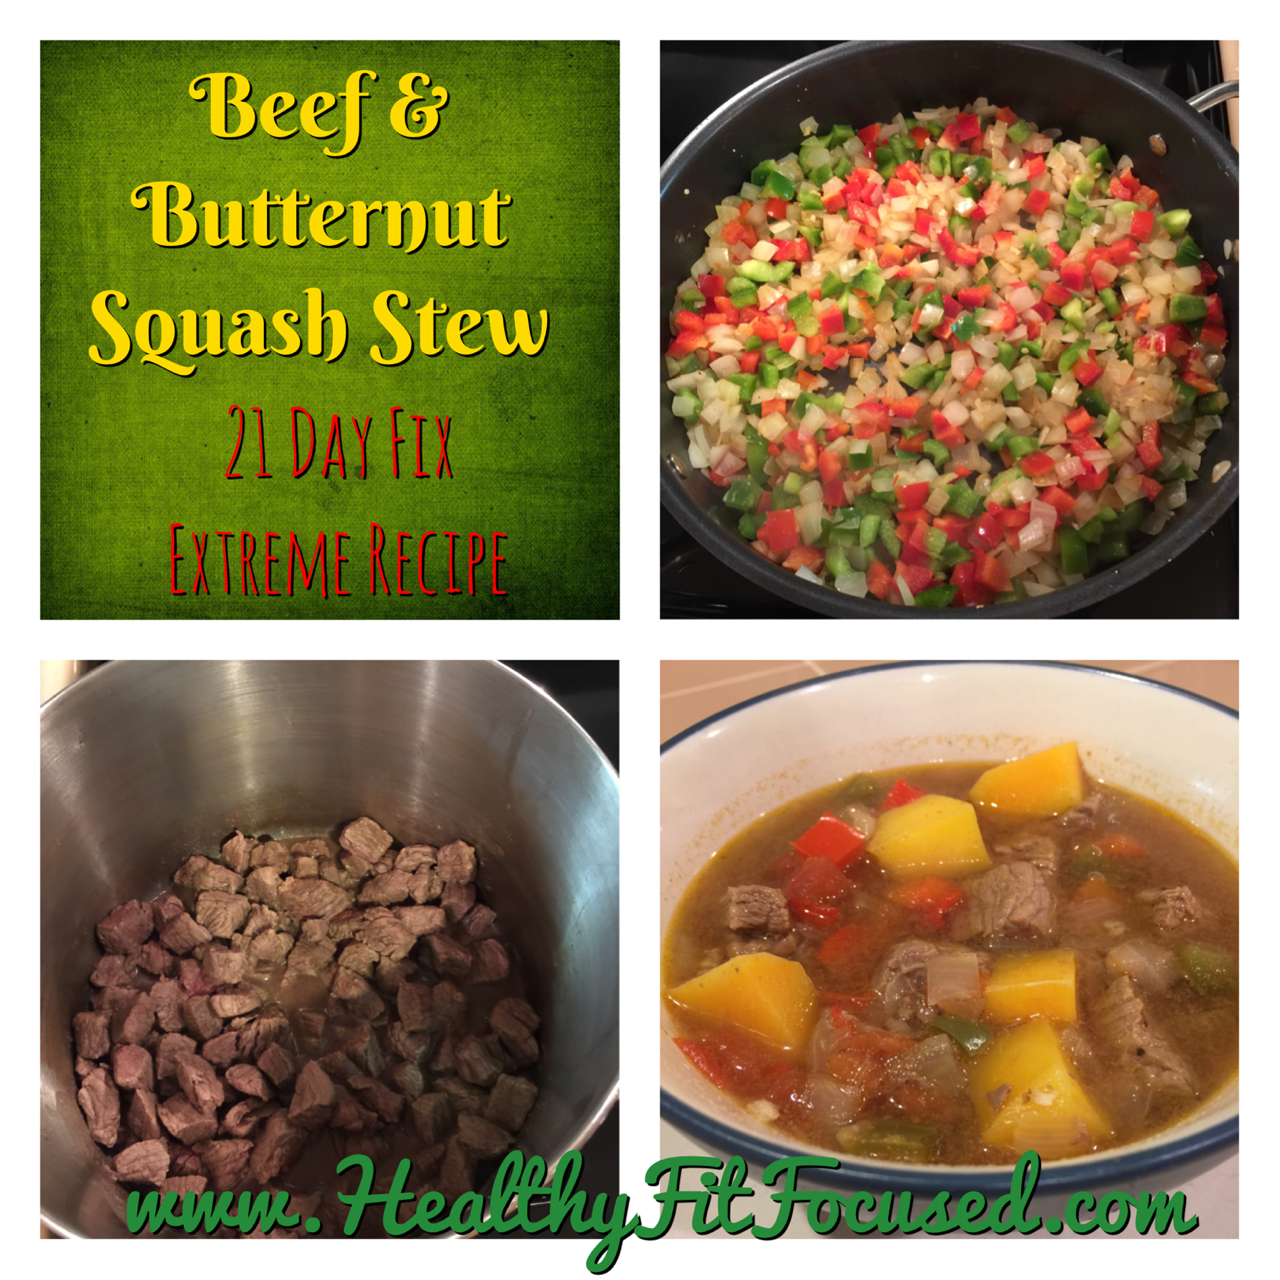 Beef and Butternut Squash Stew - 21 Day Fix Extreme Recipe